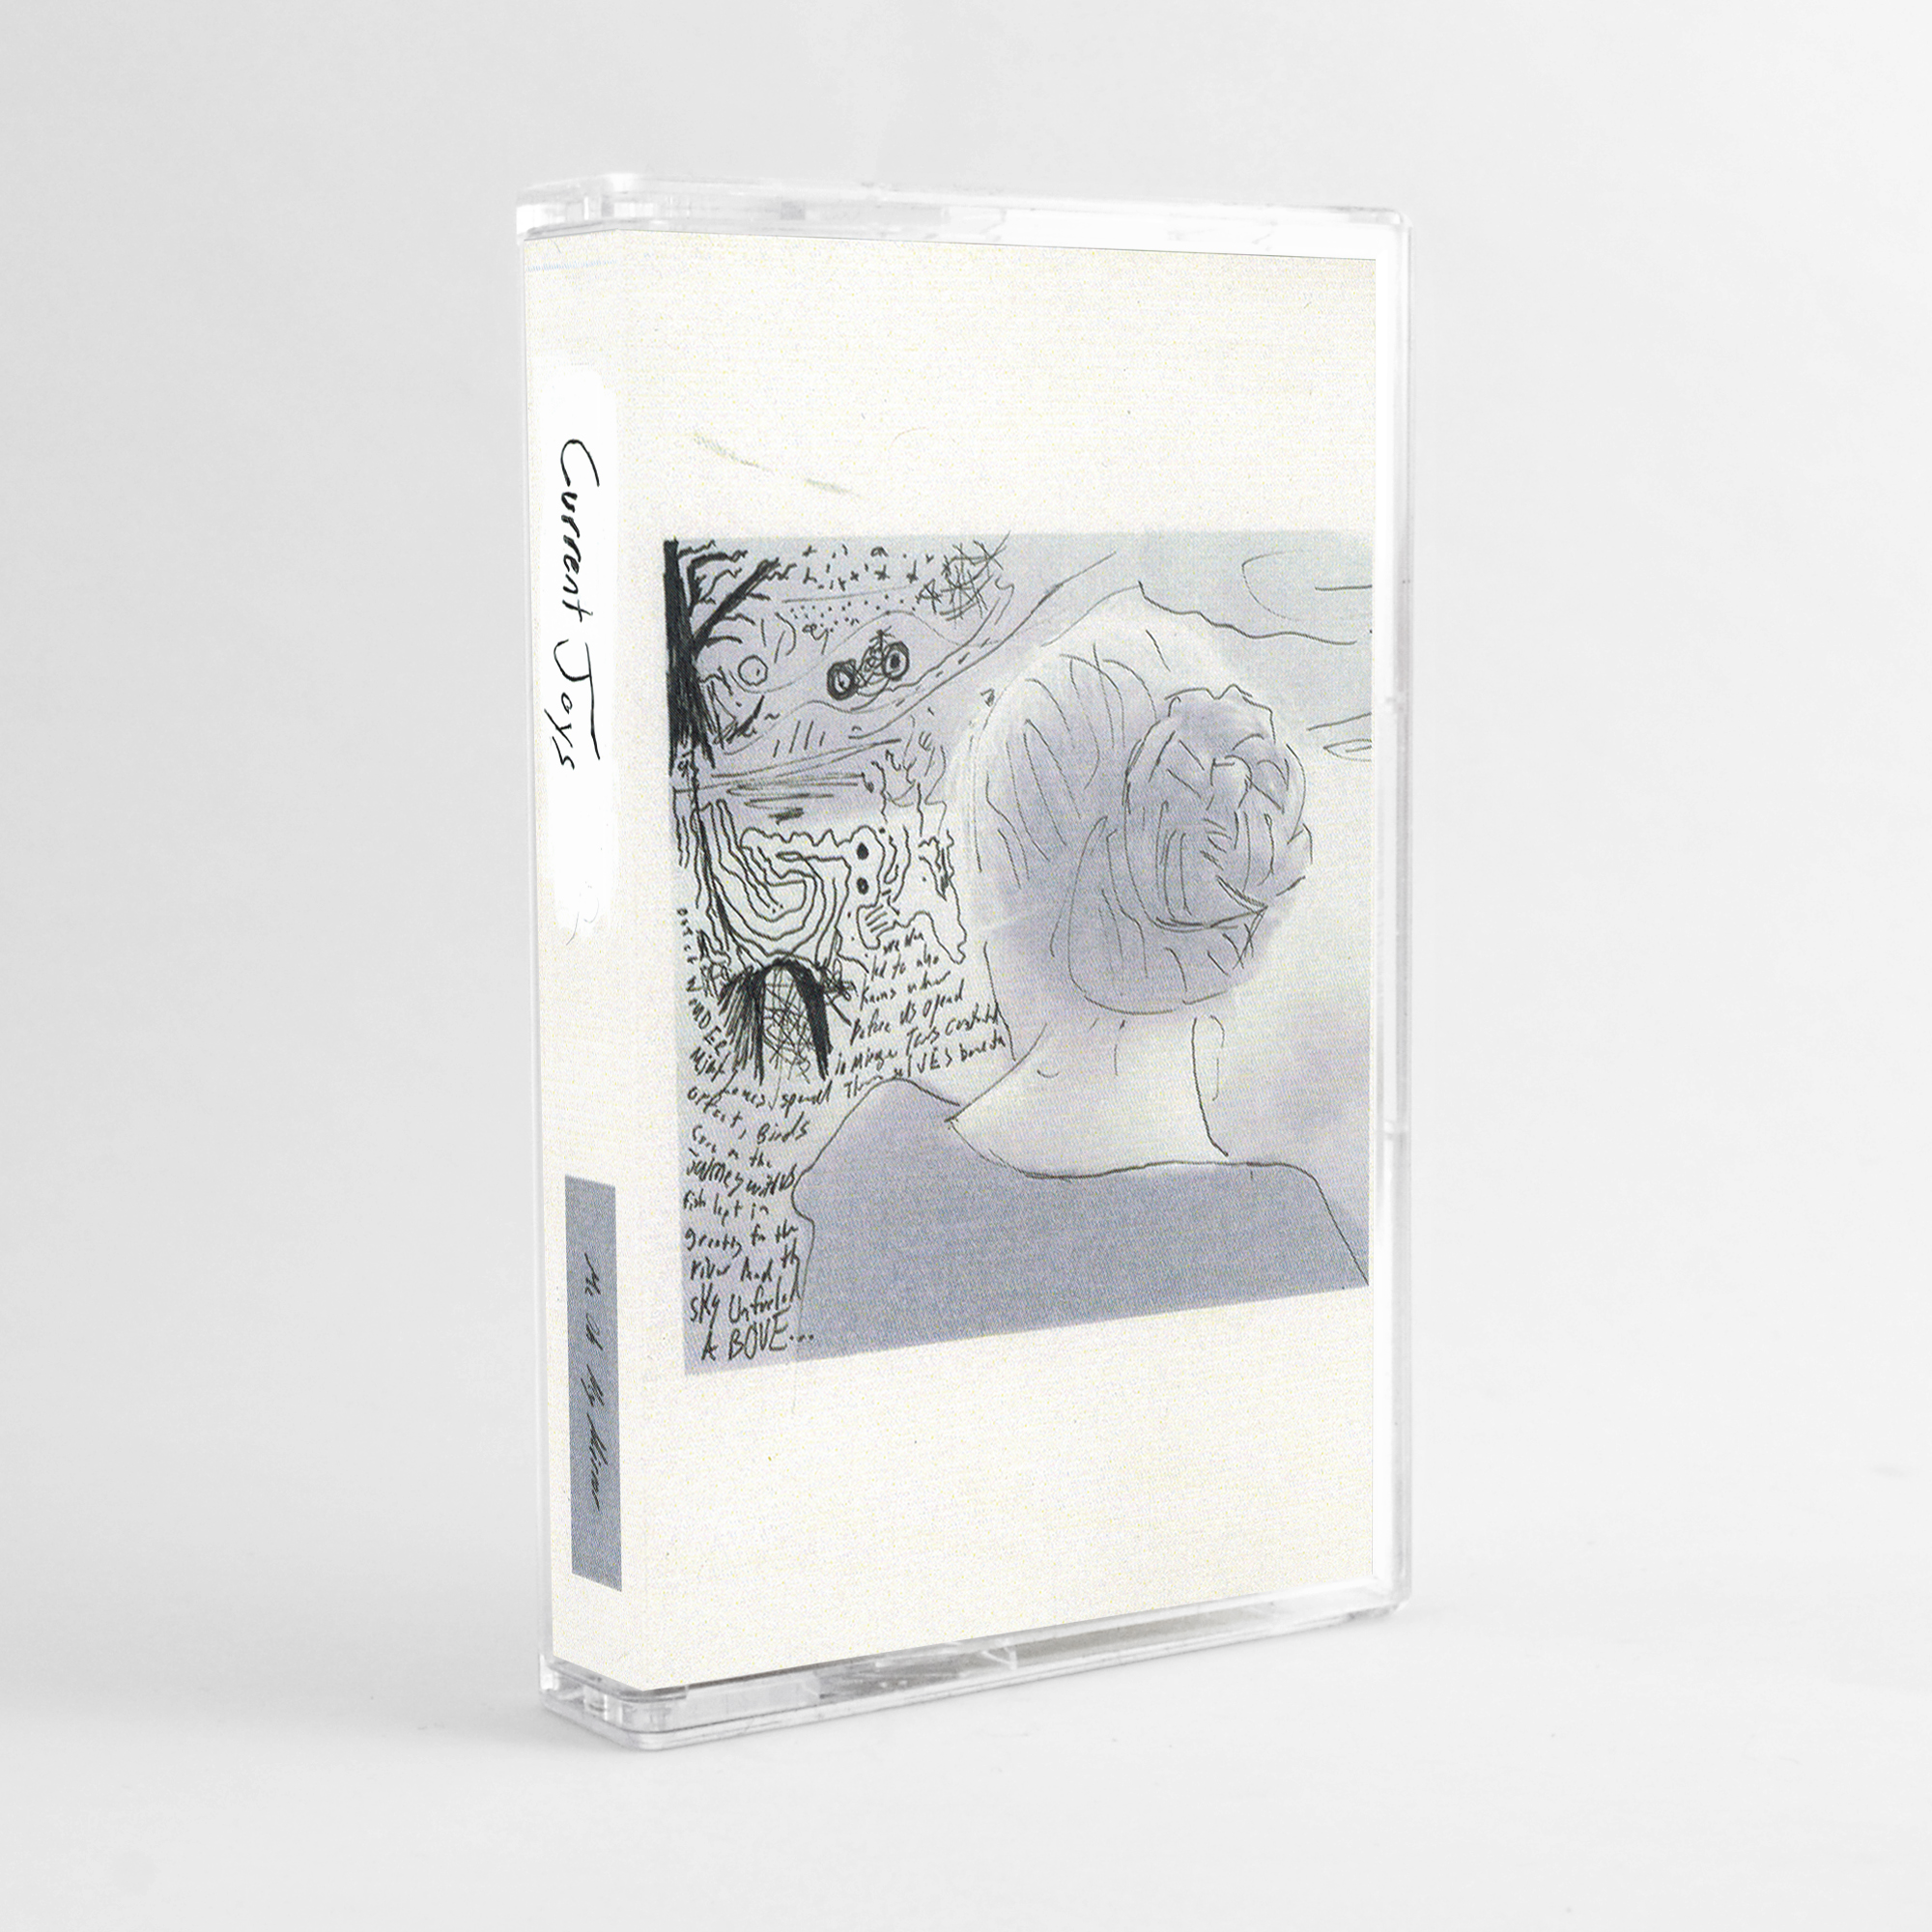 Current Joys Tape Discography